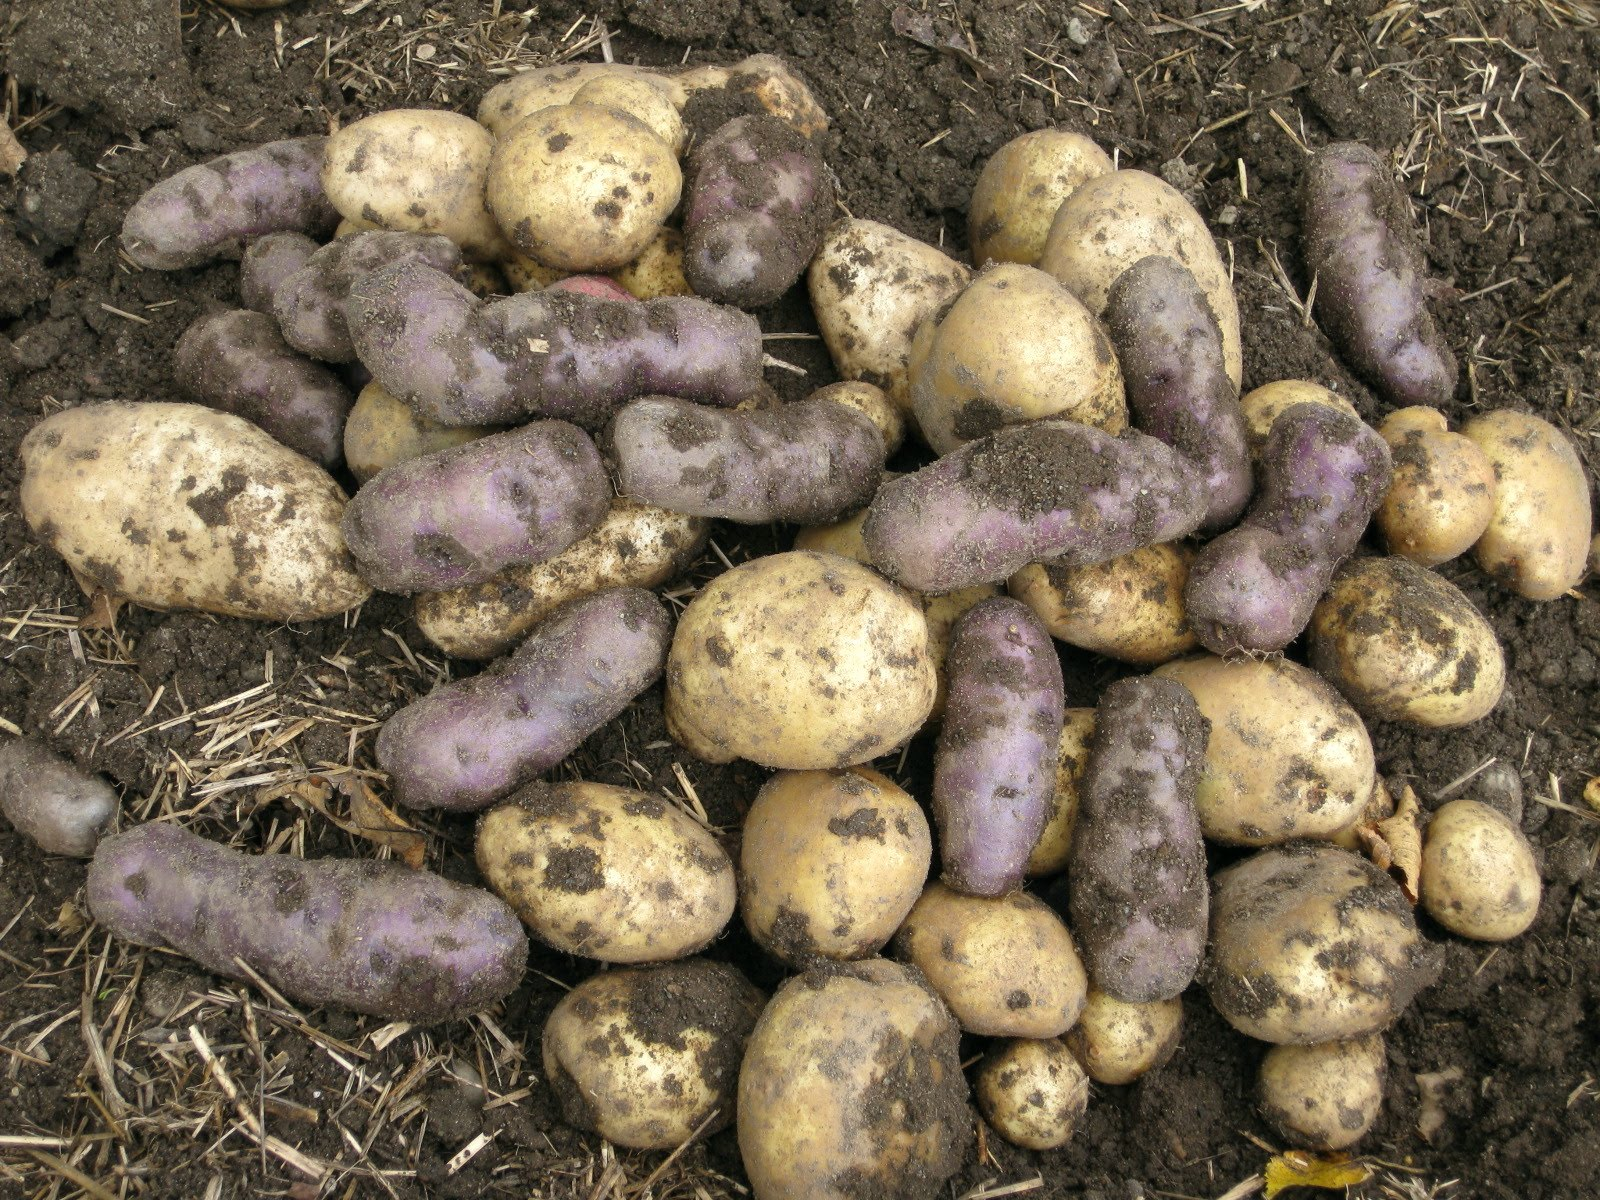 Weeds in flower beds with potato like roots - Weeds In Flower Beds With Potato Like Roots 41